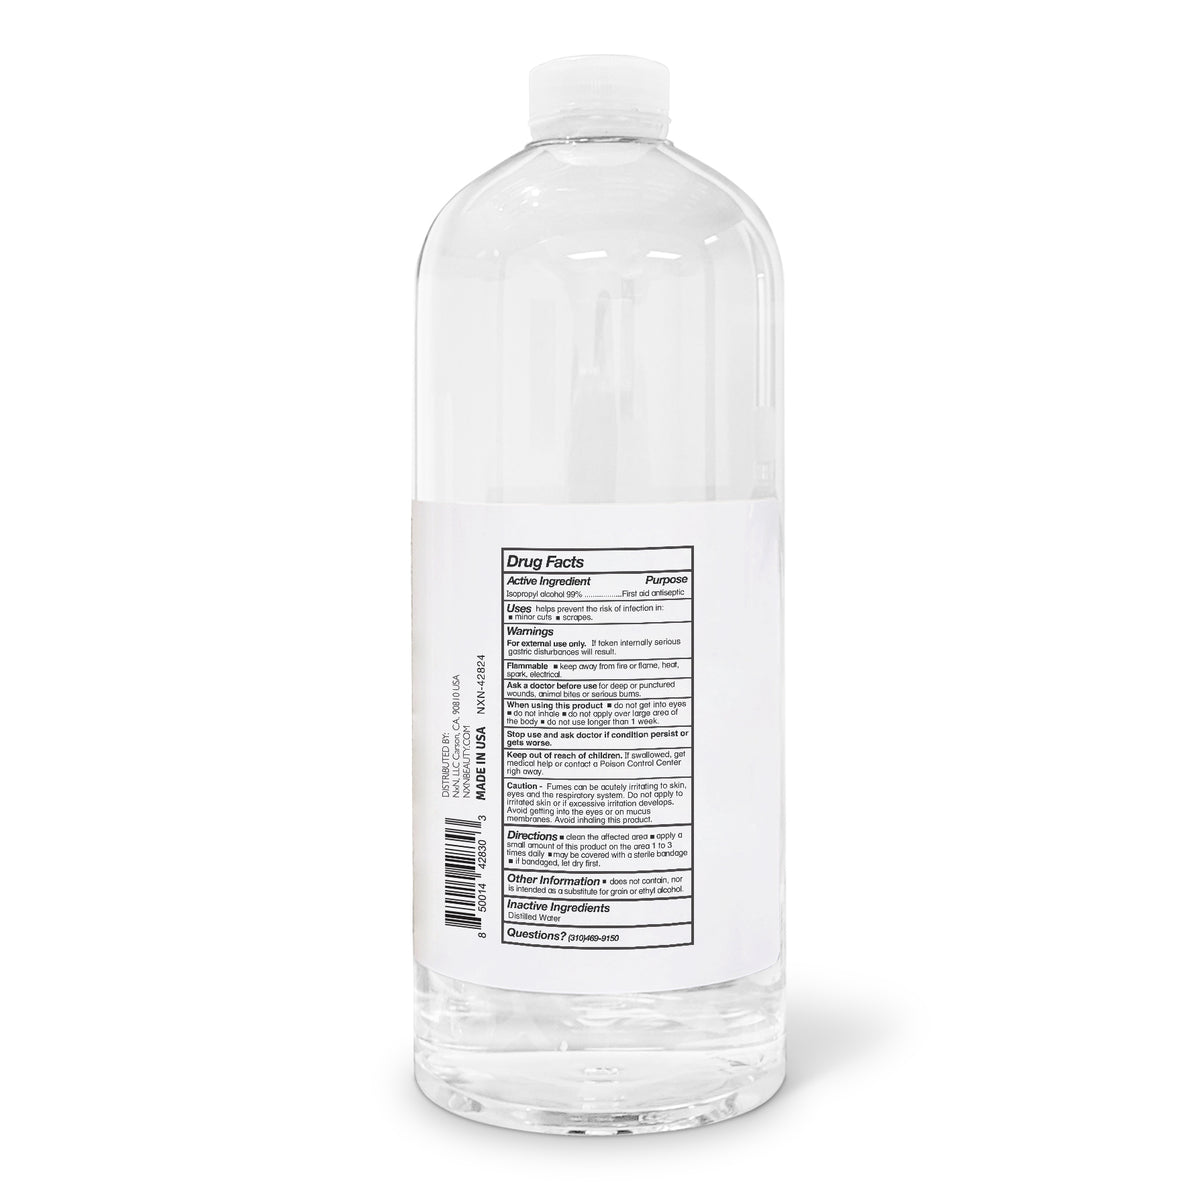 NxN 70% Isopropyl Alcohol, 33.8 oz,  4 Pack